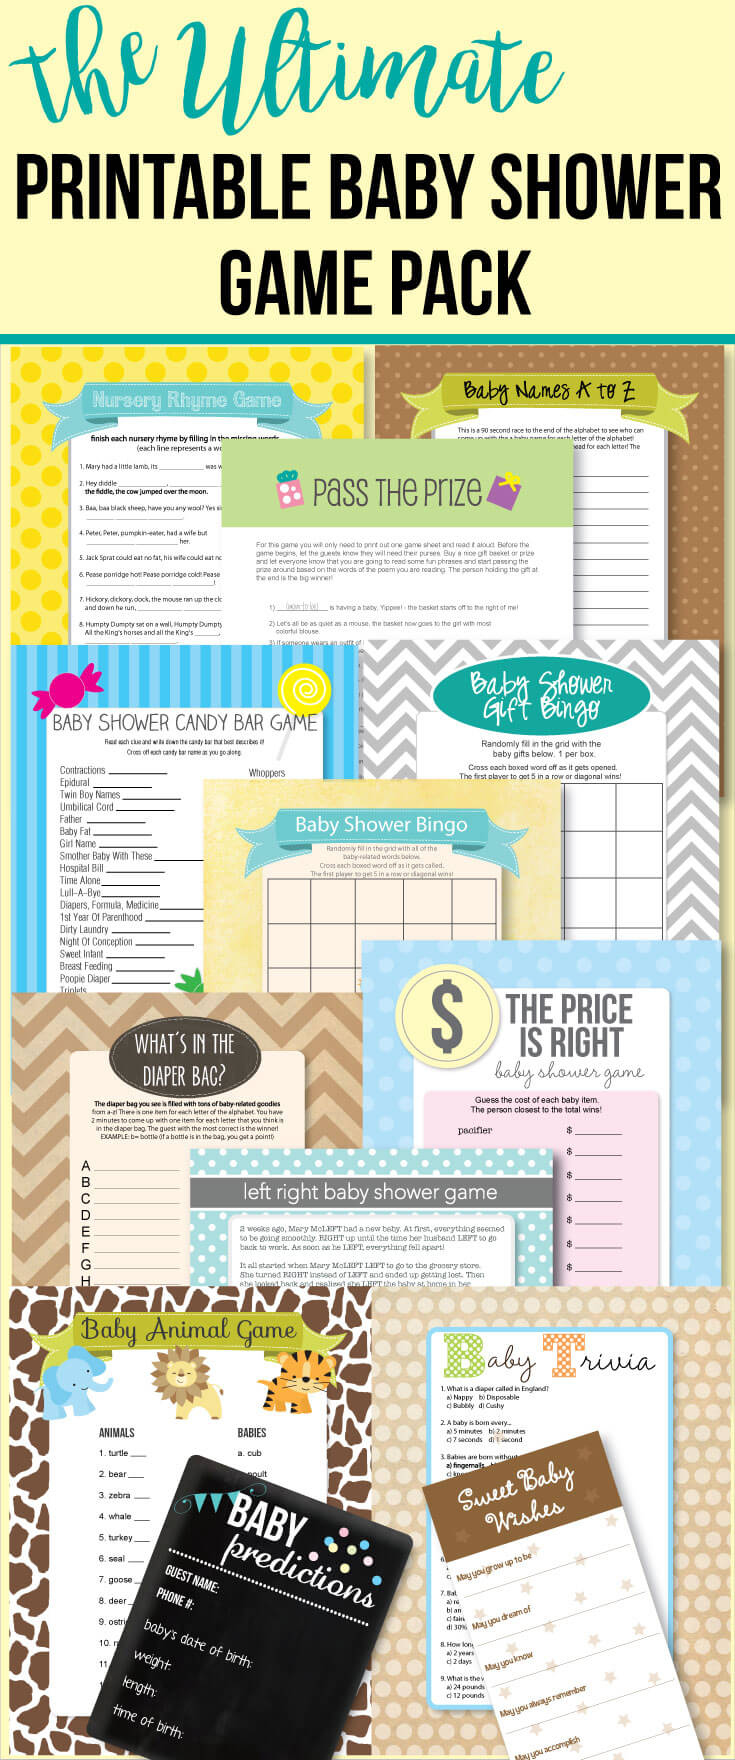 printable baby shower game pack banner